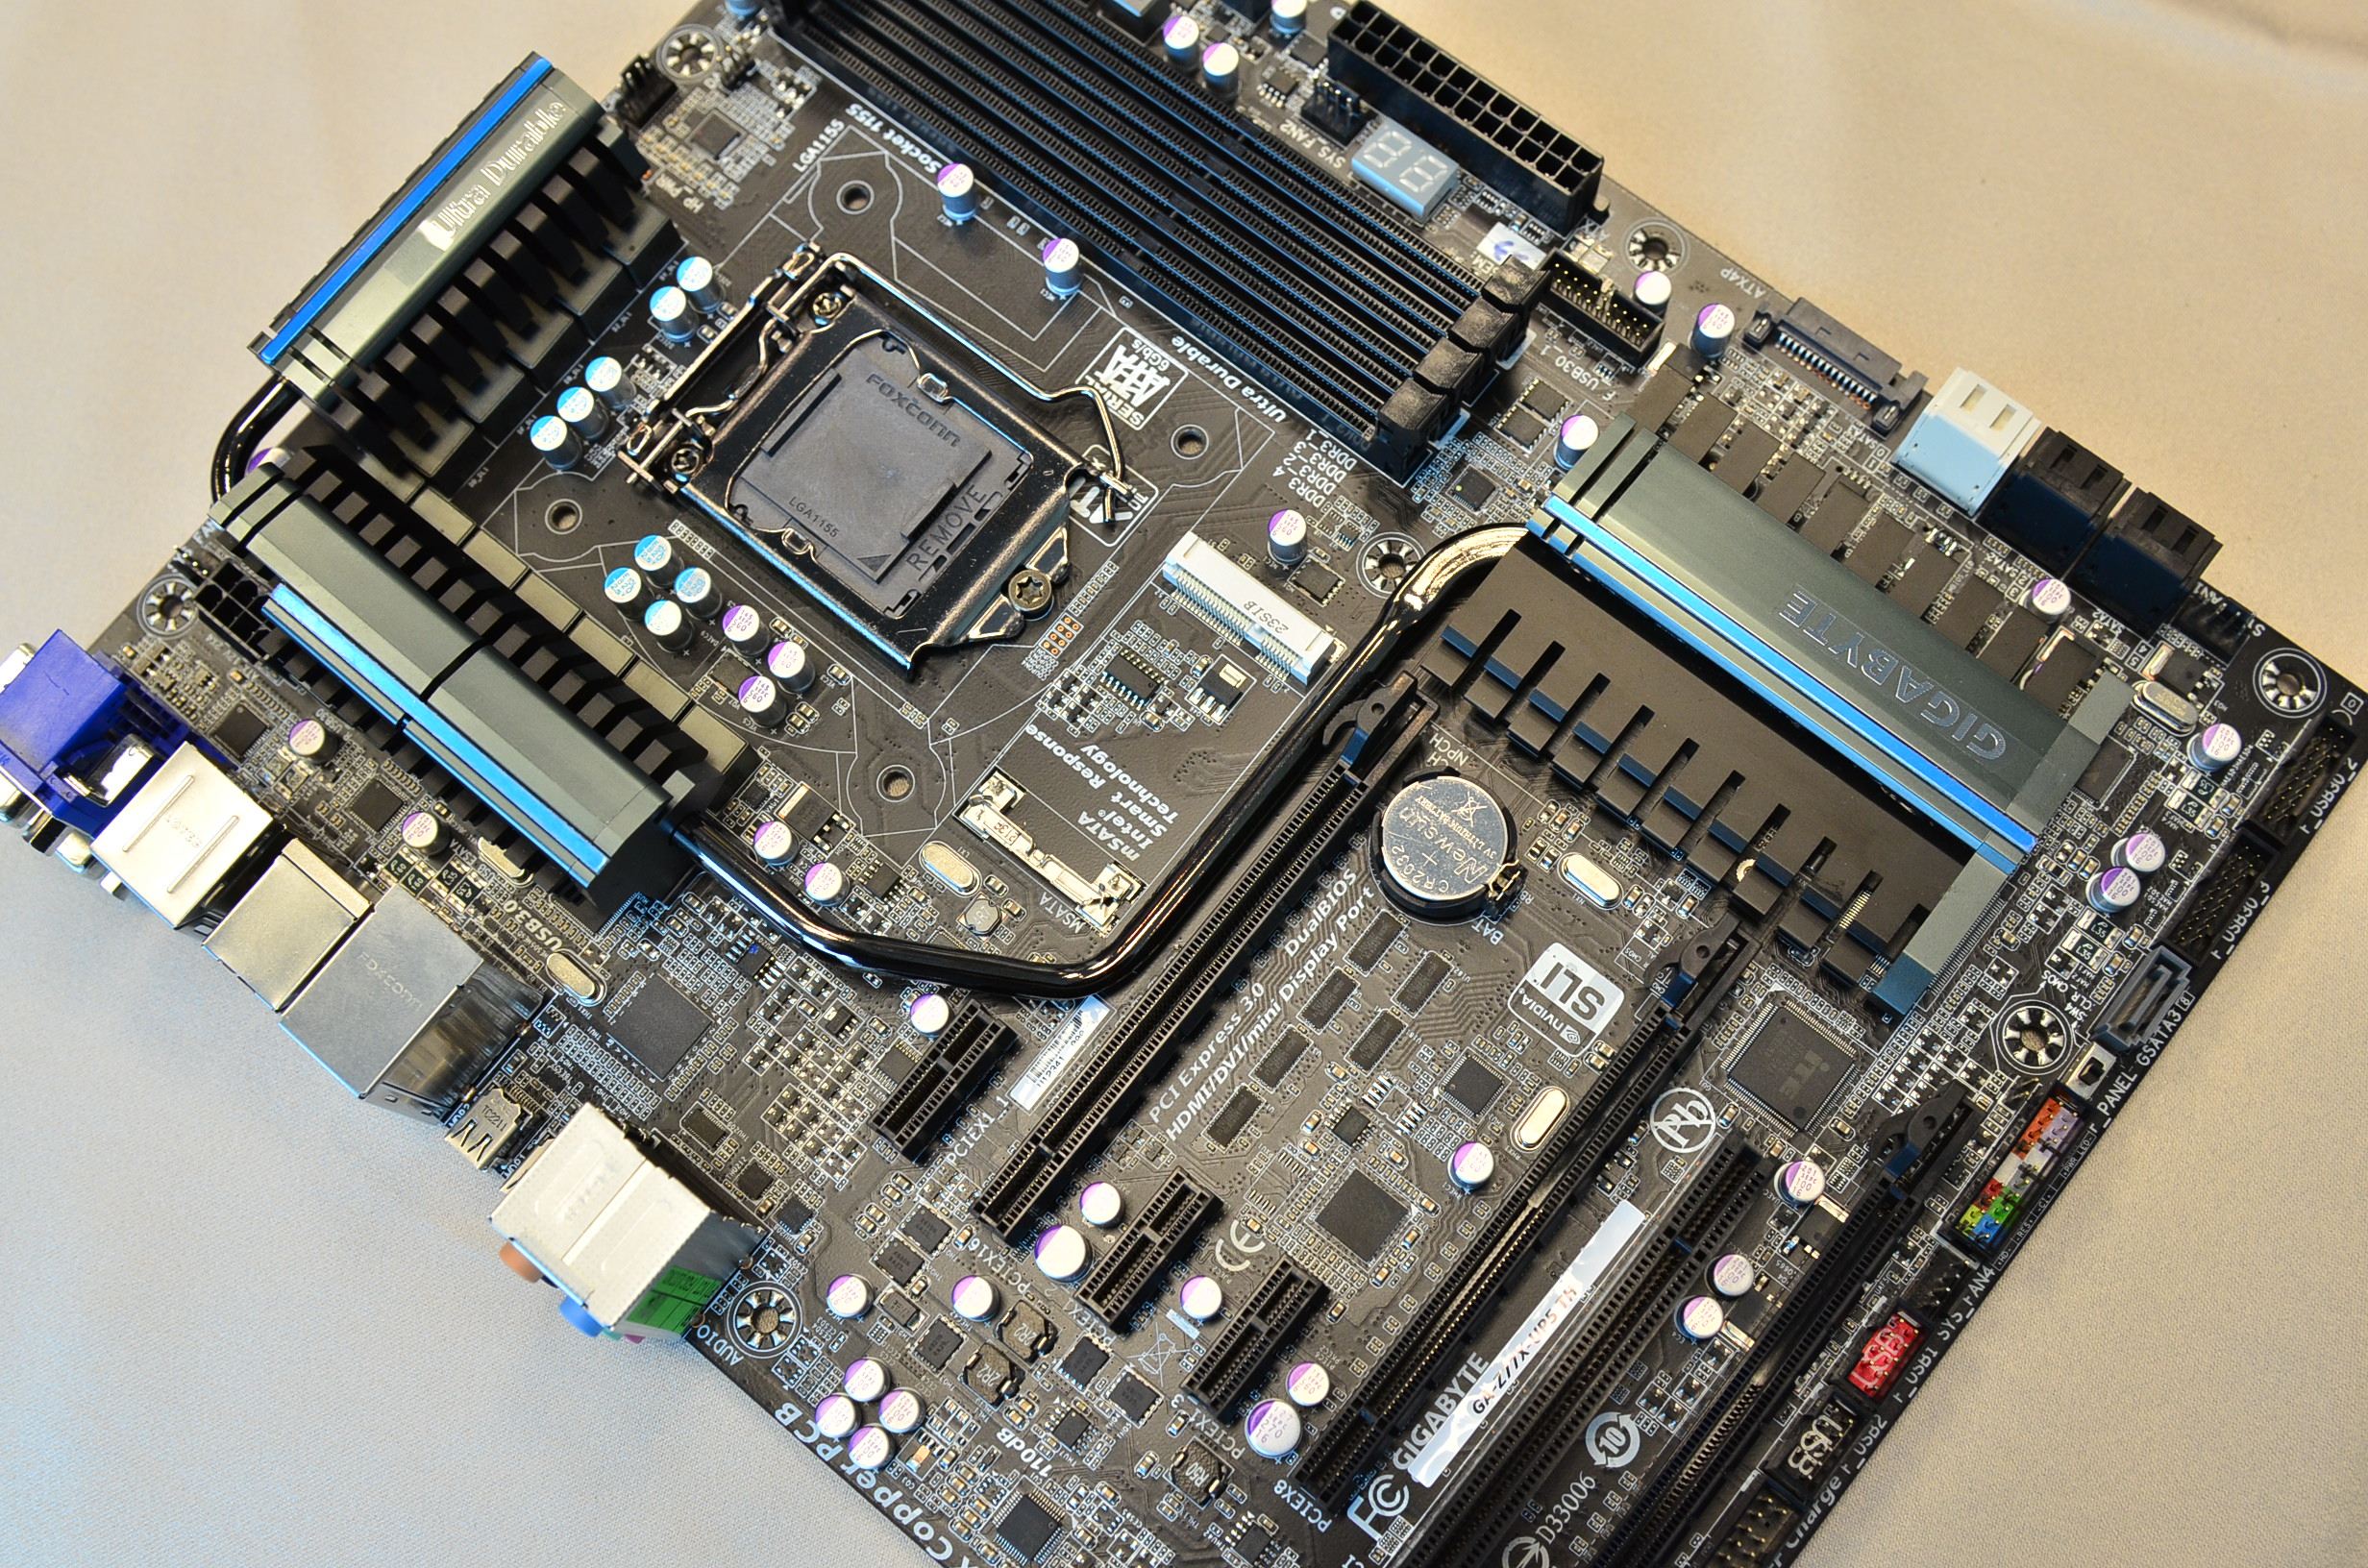 GIGABYTE-Z77X-UP5 TH-Motherboard (1)